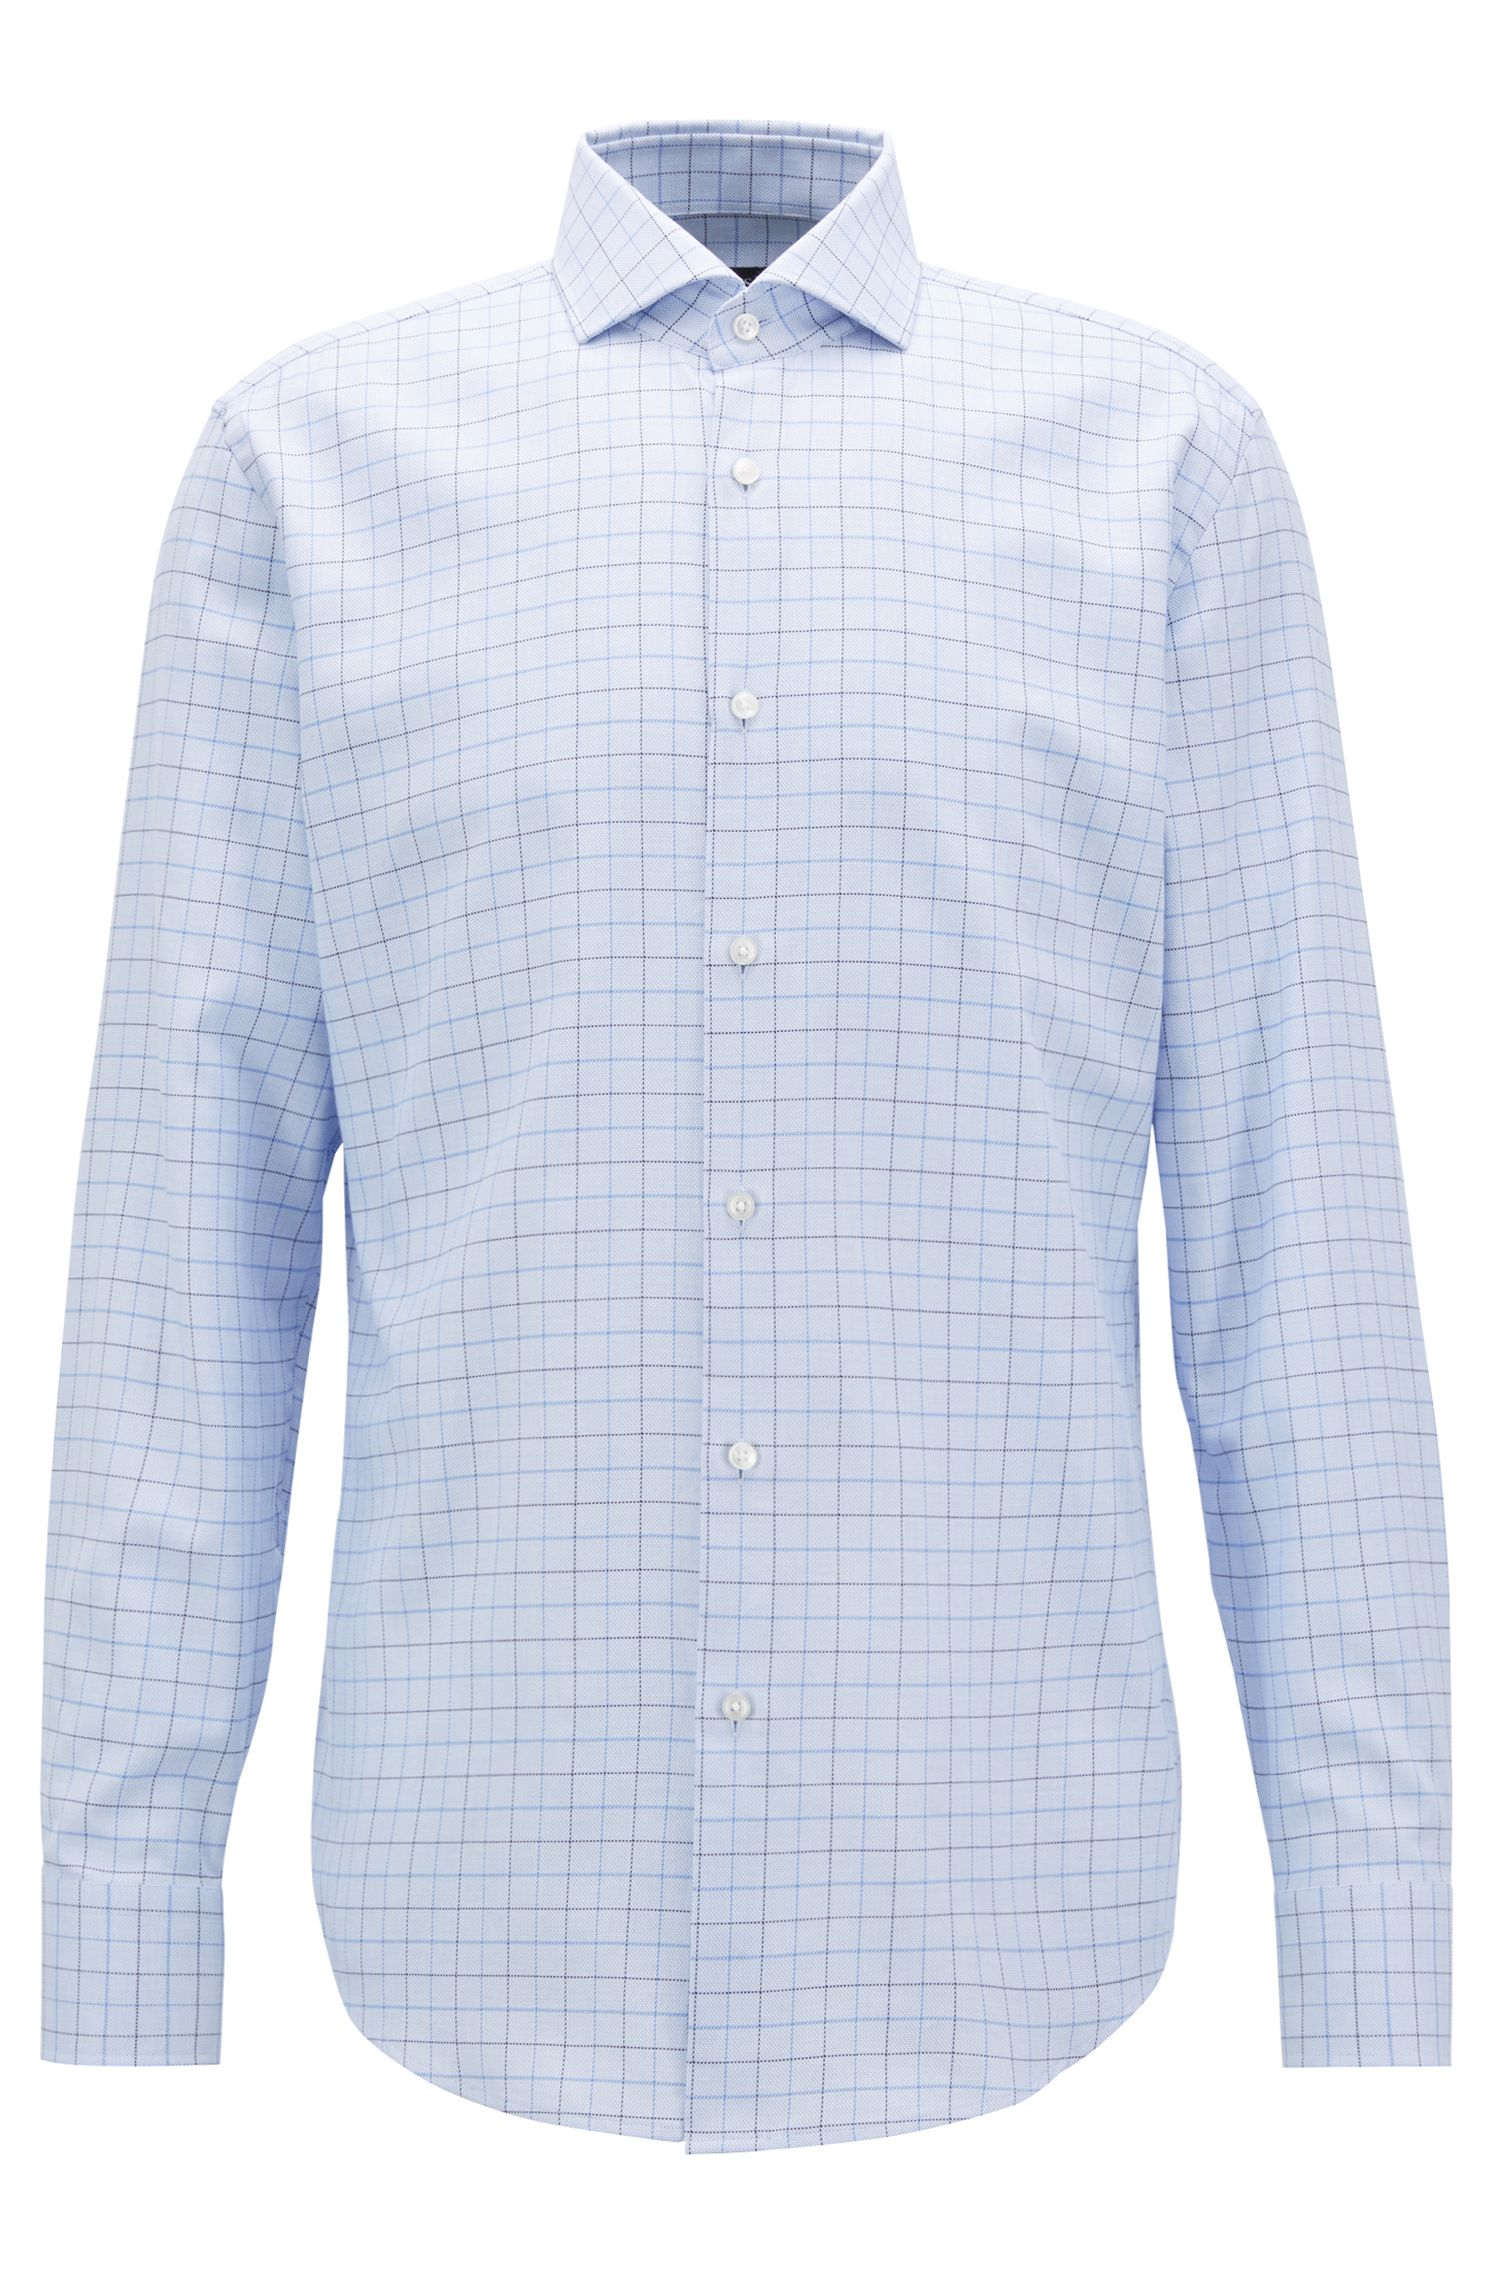 Slim-fit shirt in plain-check cotton twill